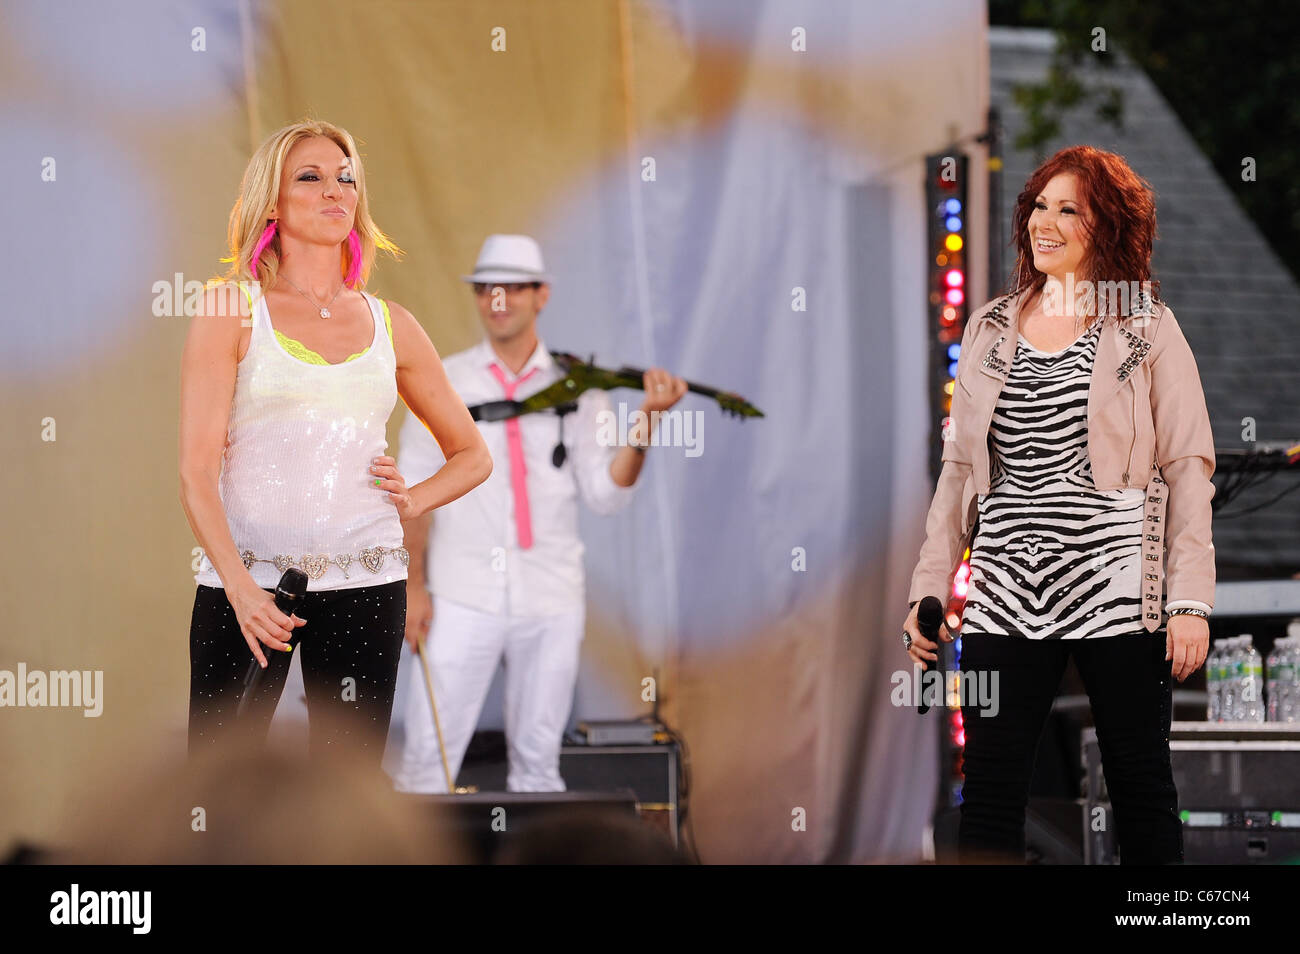 Debbie Gibson, Tiffany, perform on 'Good Morning America' at Rumsey Playfield, Central Park out and about - Stock Image